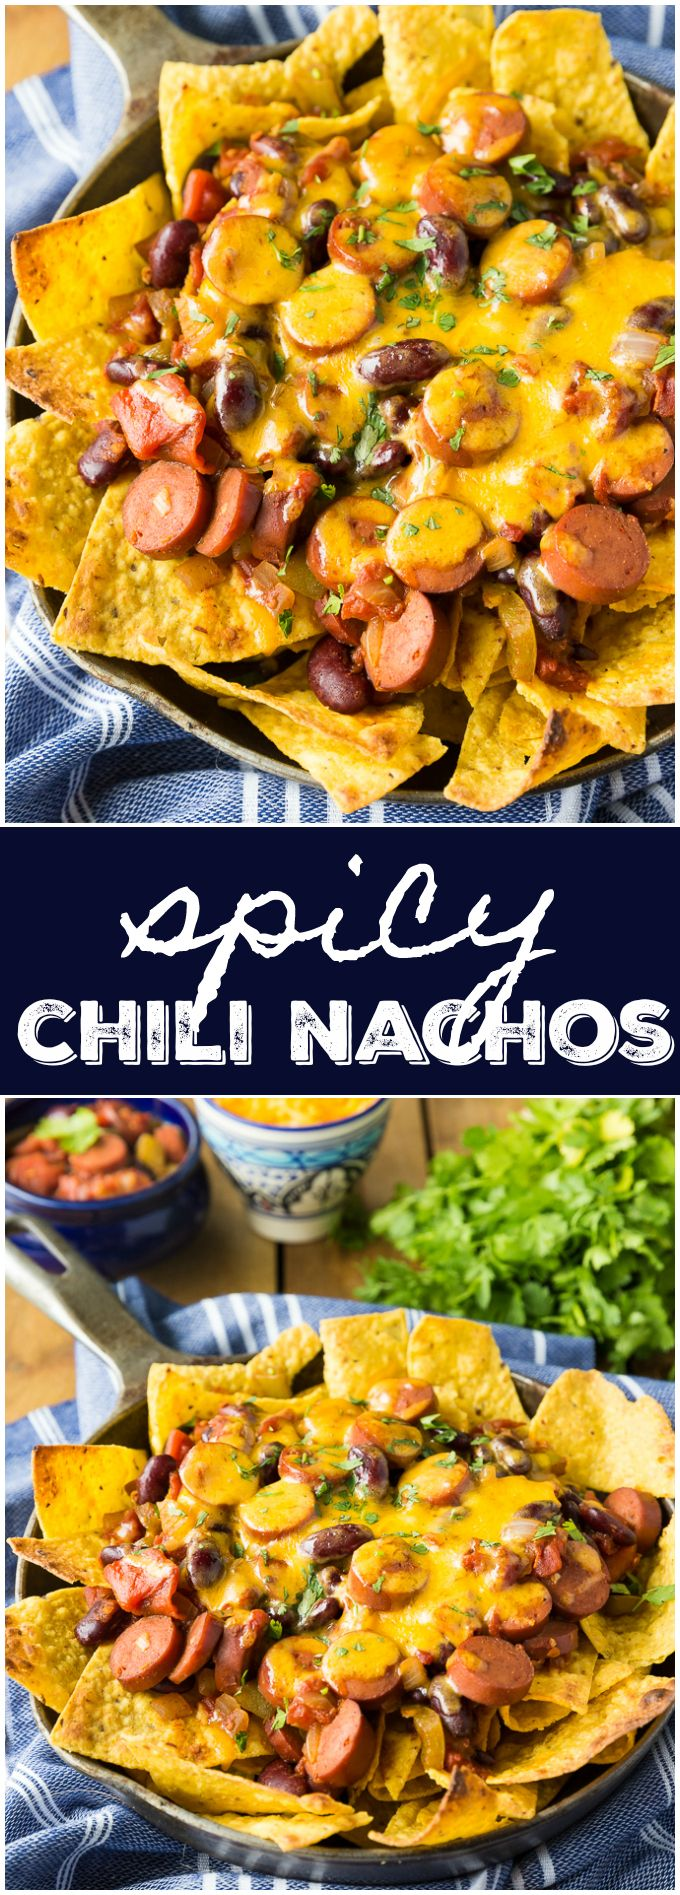 Spicy Chili Nachos - Perfect for entertaining! This easy recipe is packed full of fiery flavour.